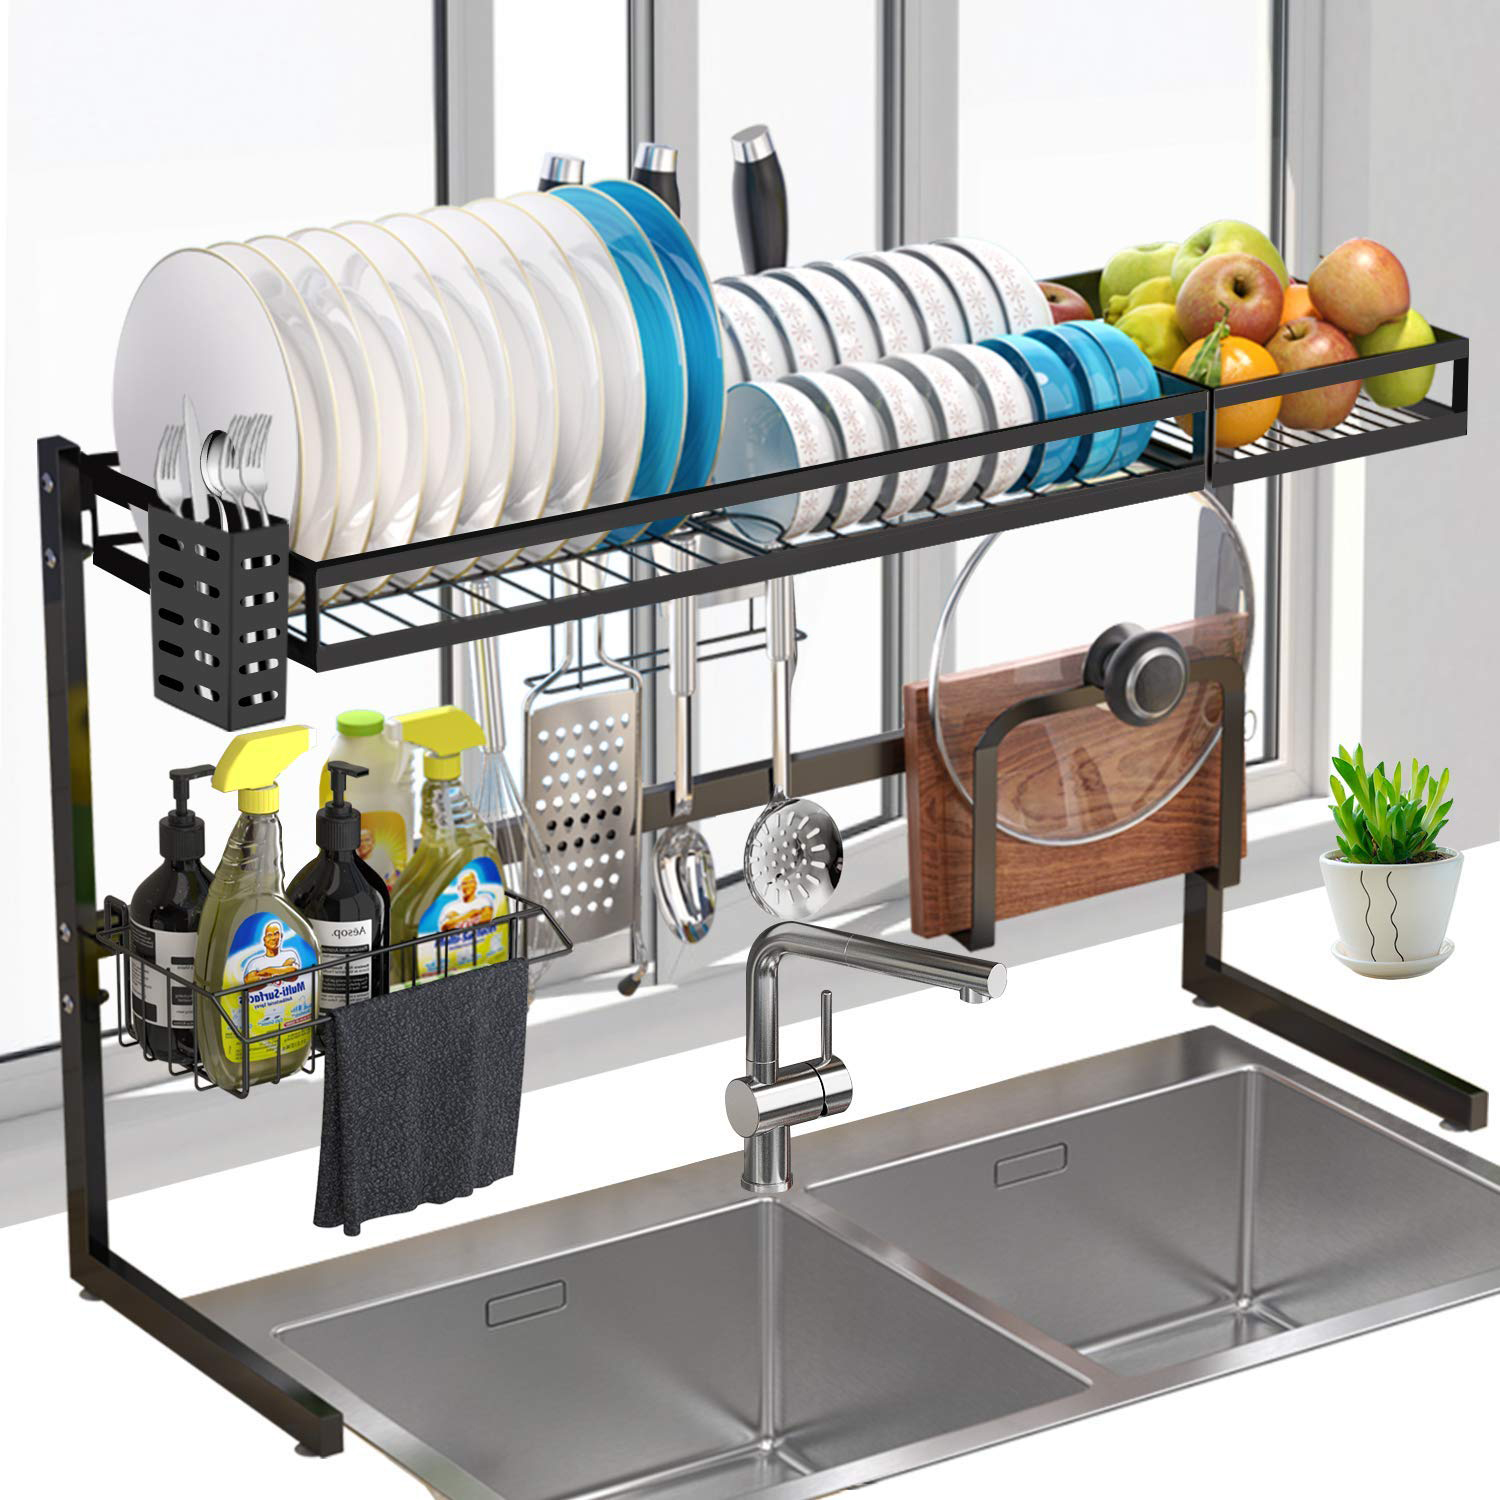 G Ting Over Sink Dish Rack